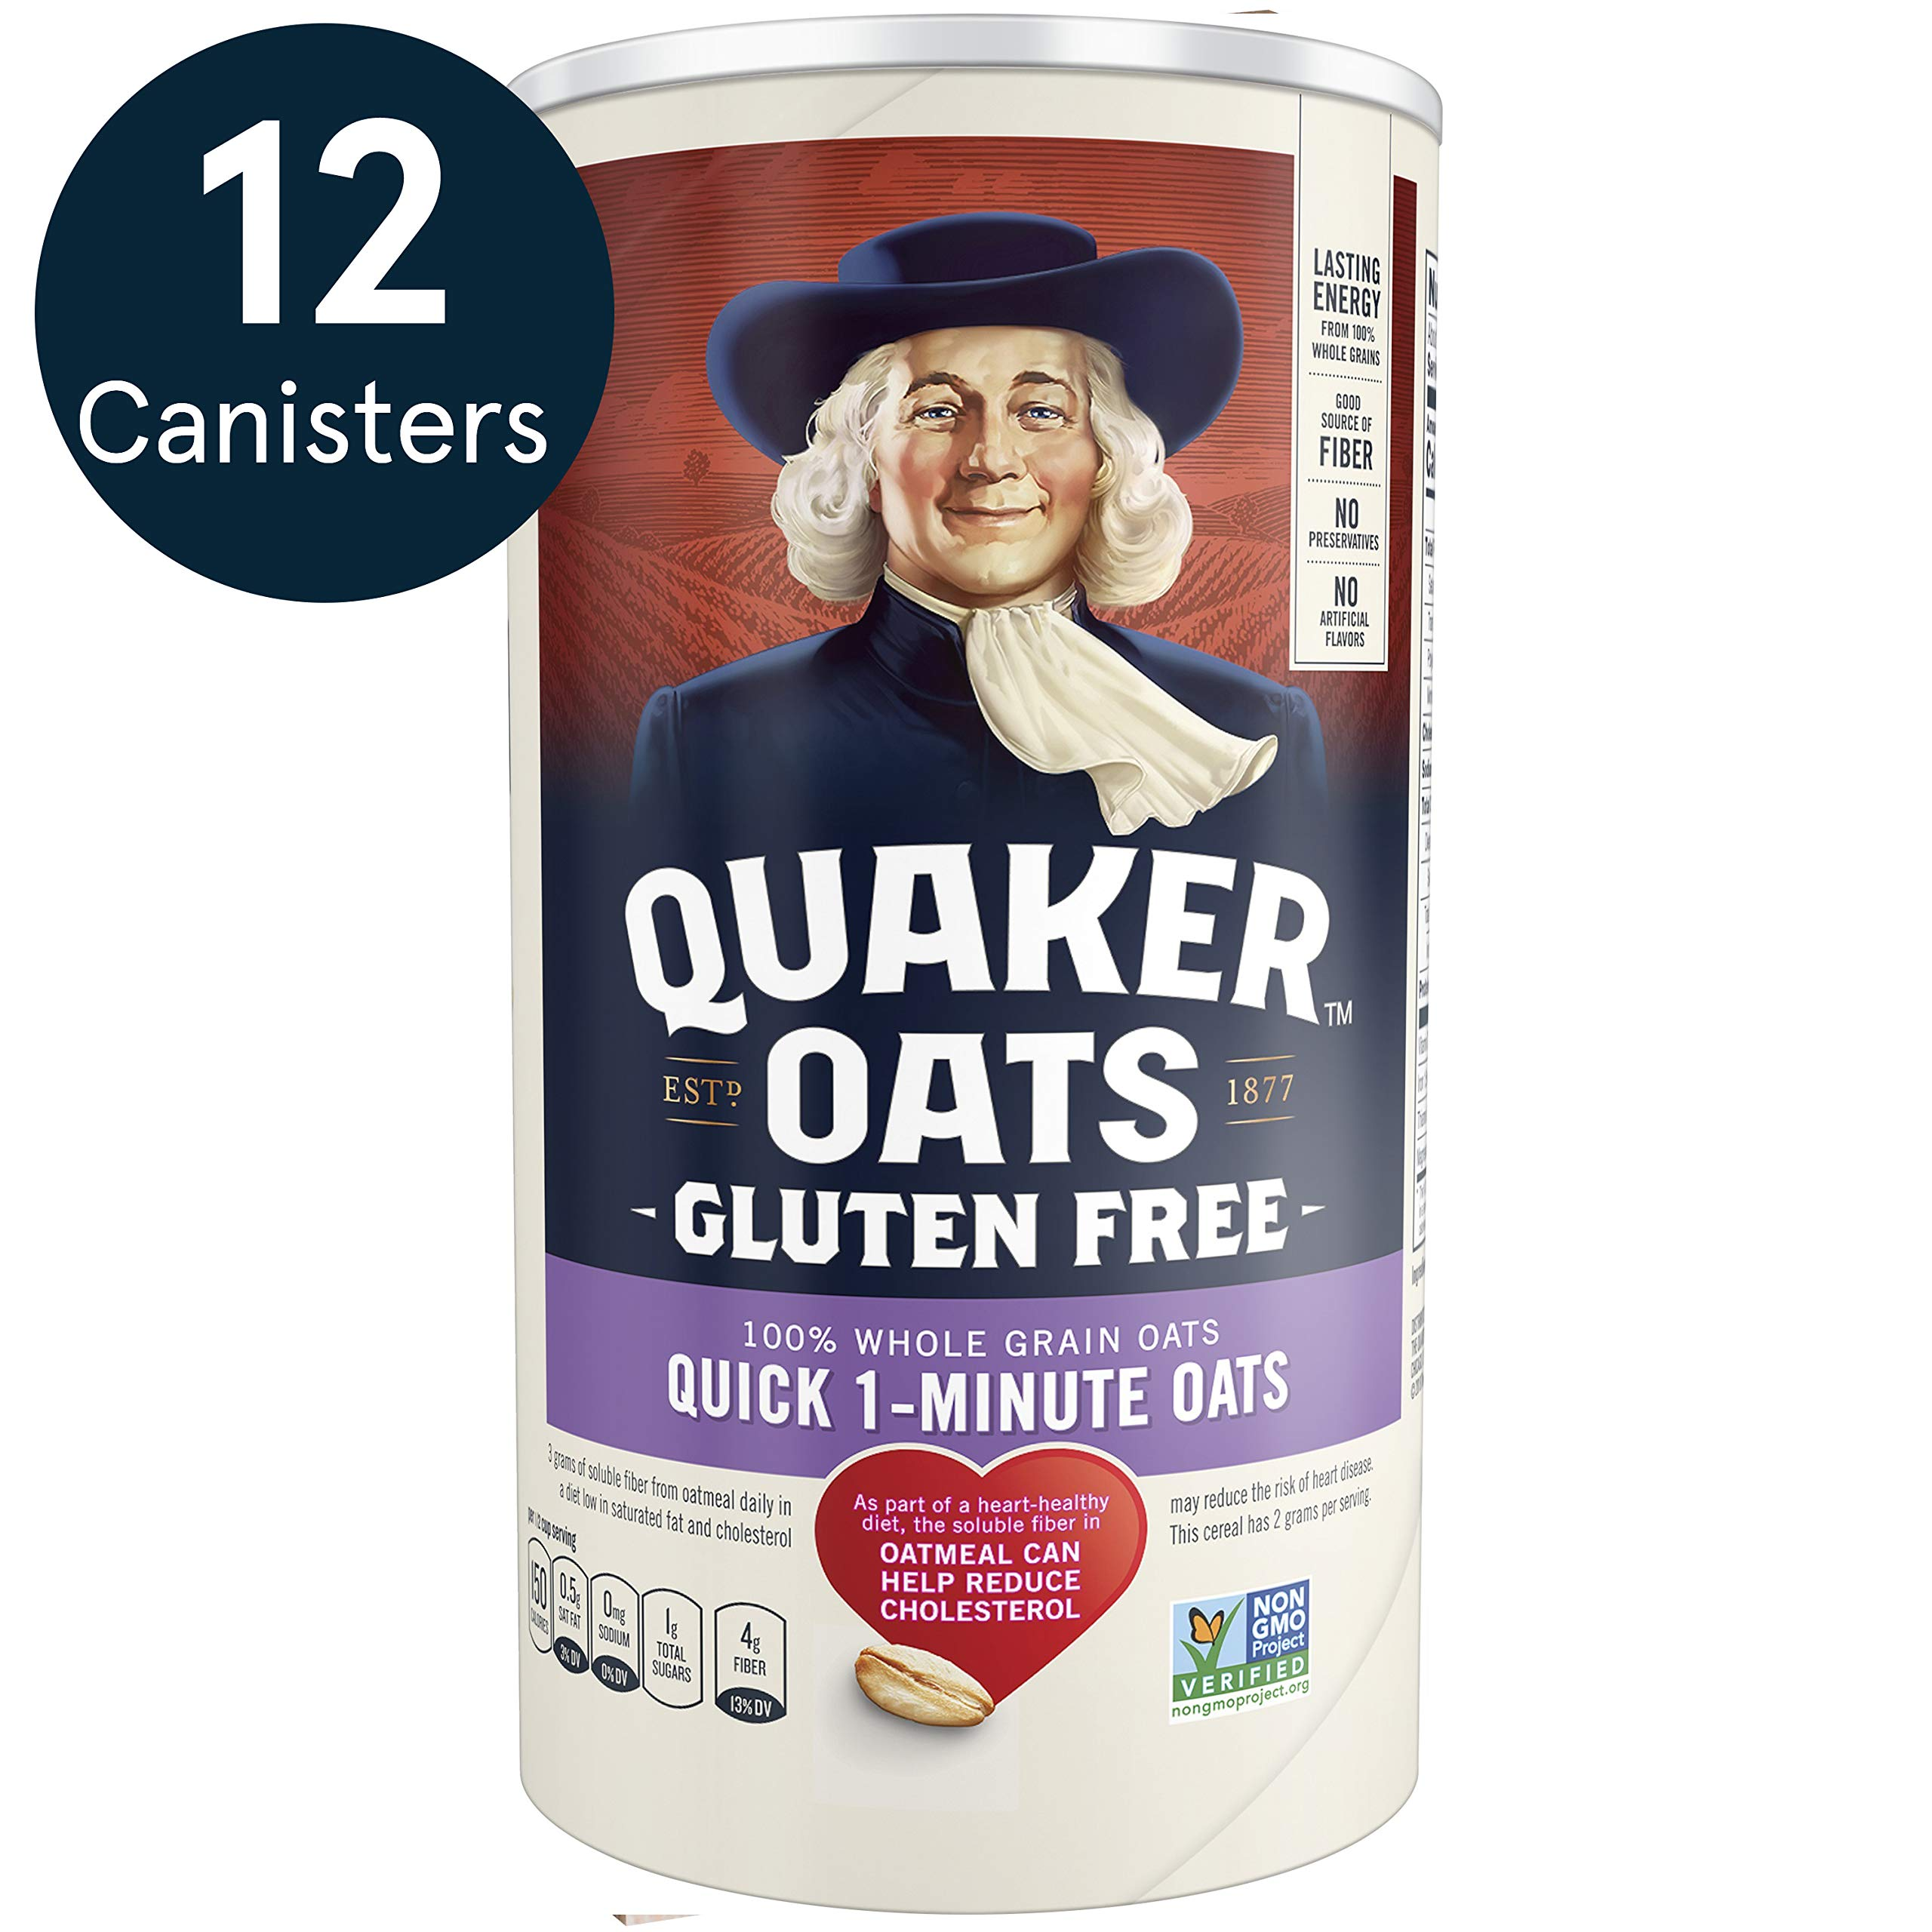 Quaker Gluten Free Quick 1-Minute Oats, Non GMO Project Verified, 18oz Canister, 12 Count by Quaker